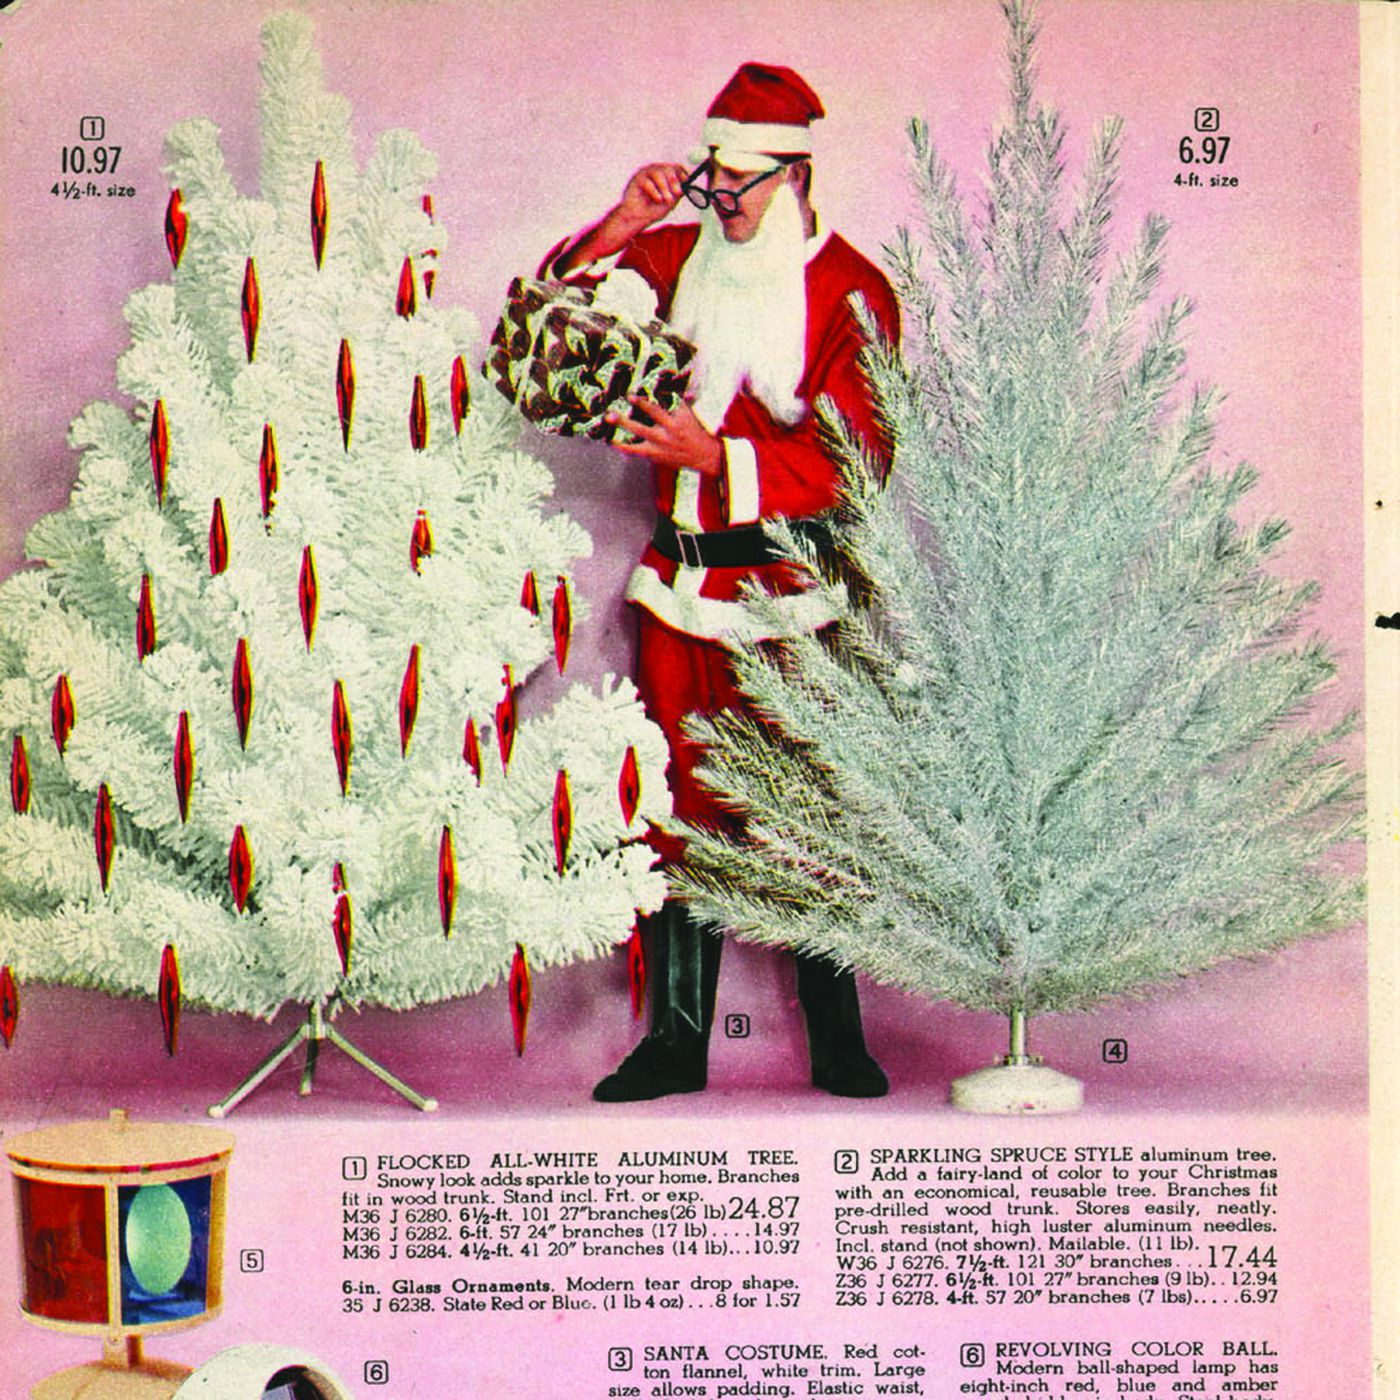 5 fond memories of midcentury Christmas design and decor Curbed